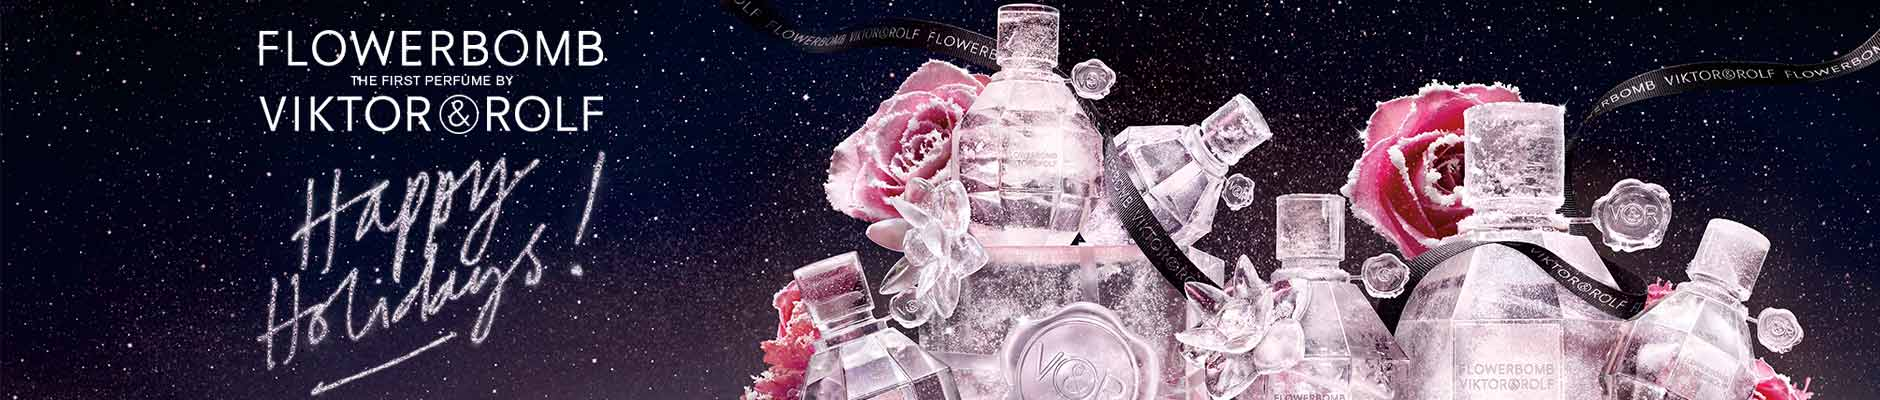 Flowerbomb: The first perfume by - Viktor & Rolf - Happy Holidays!